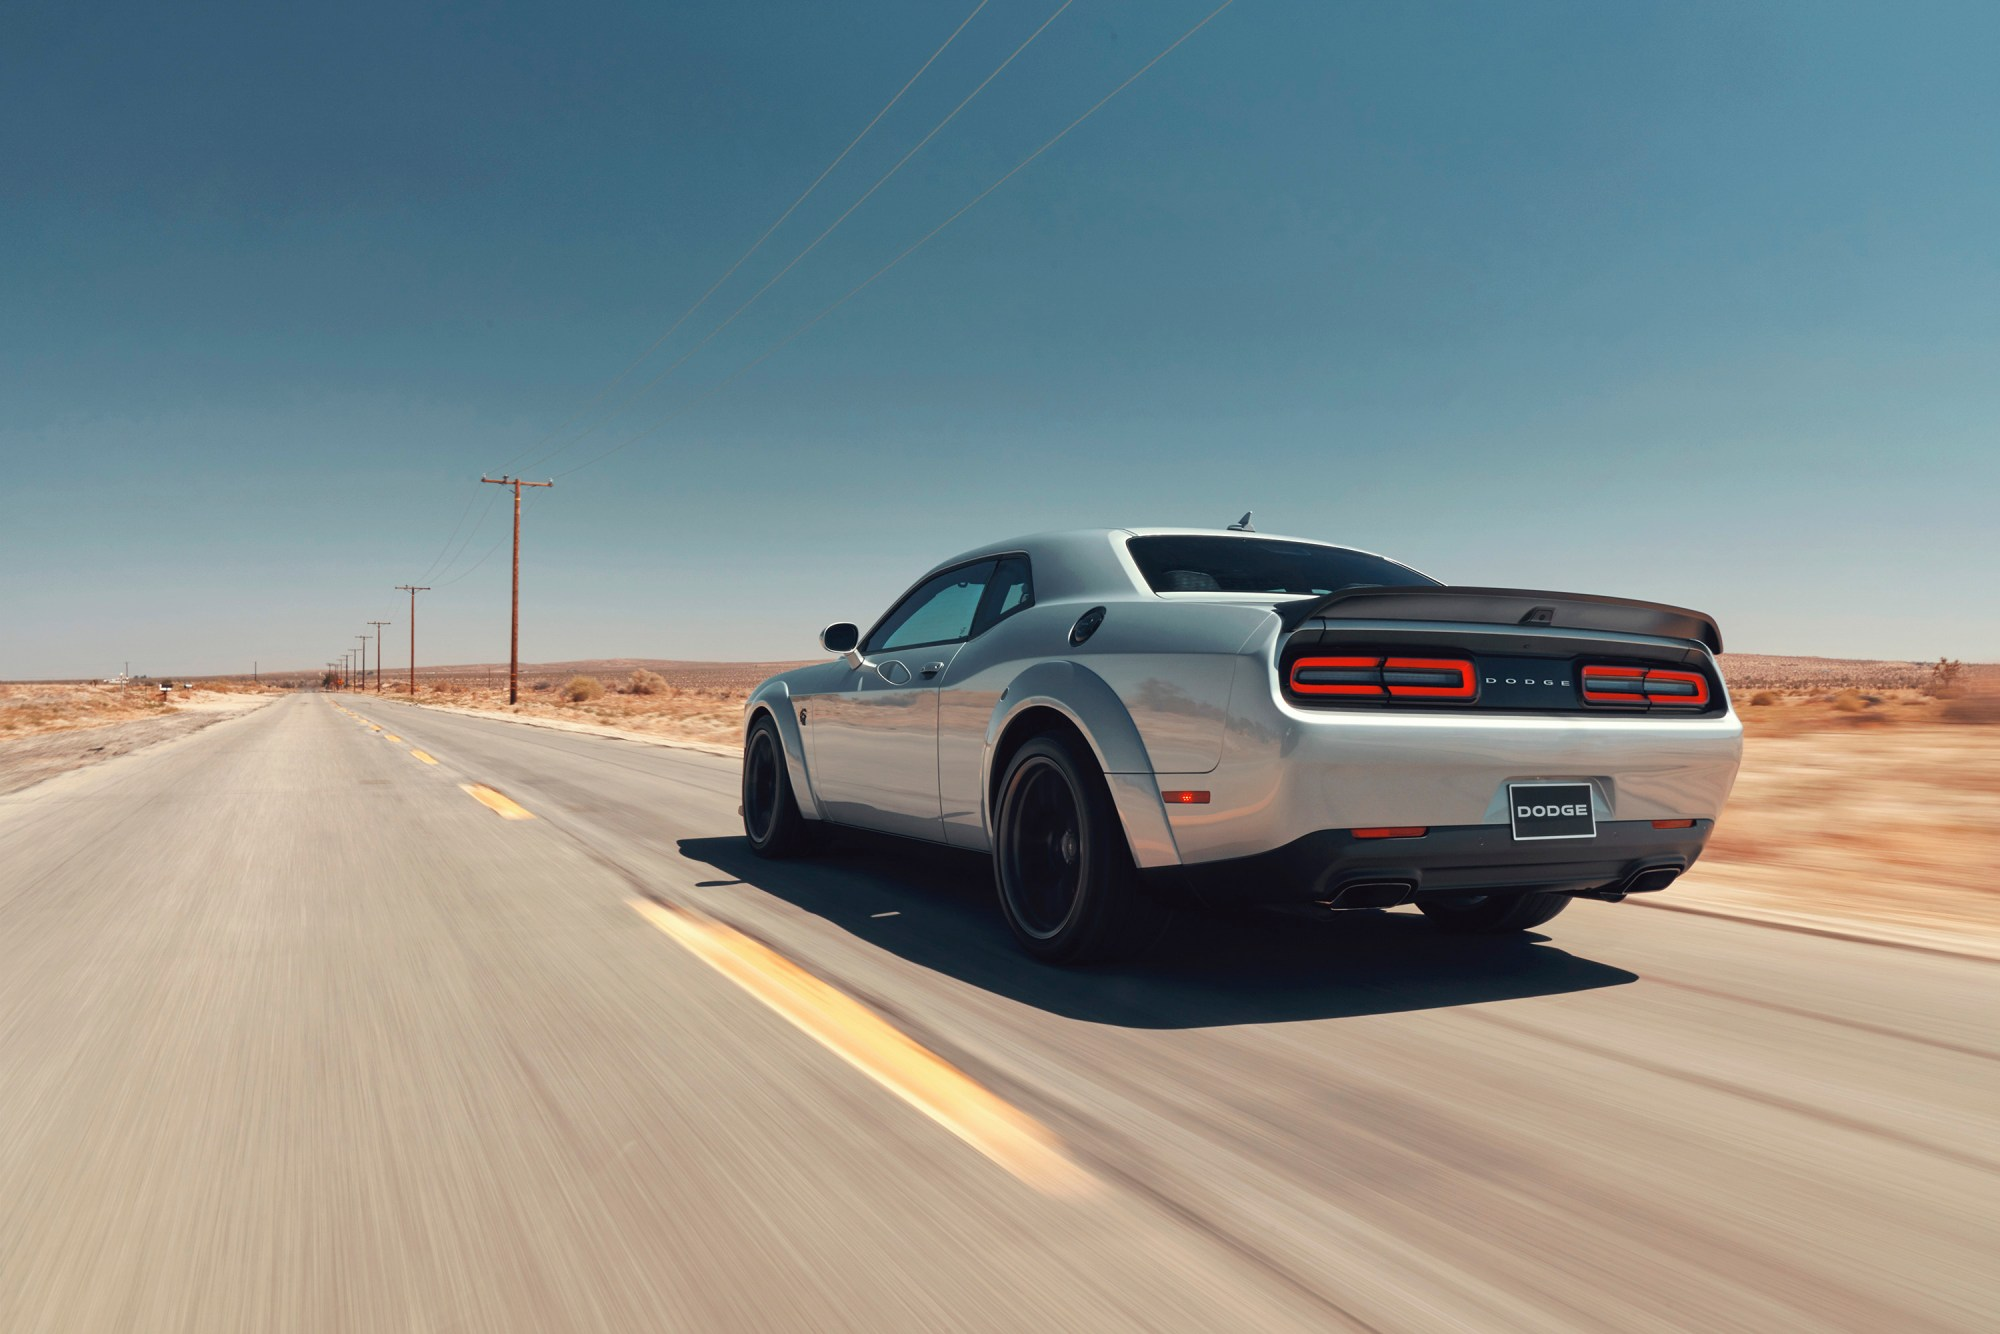 hight resolution of 2020 ford mustang shelby gt500 vs 2019 dodge challenger srt redeye top speed